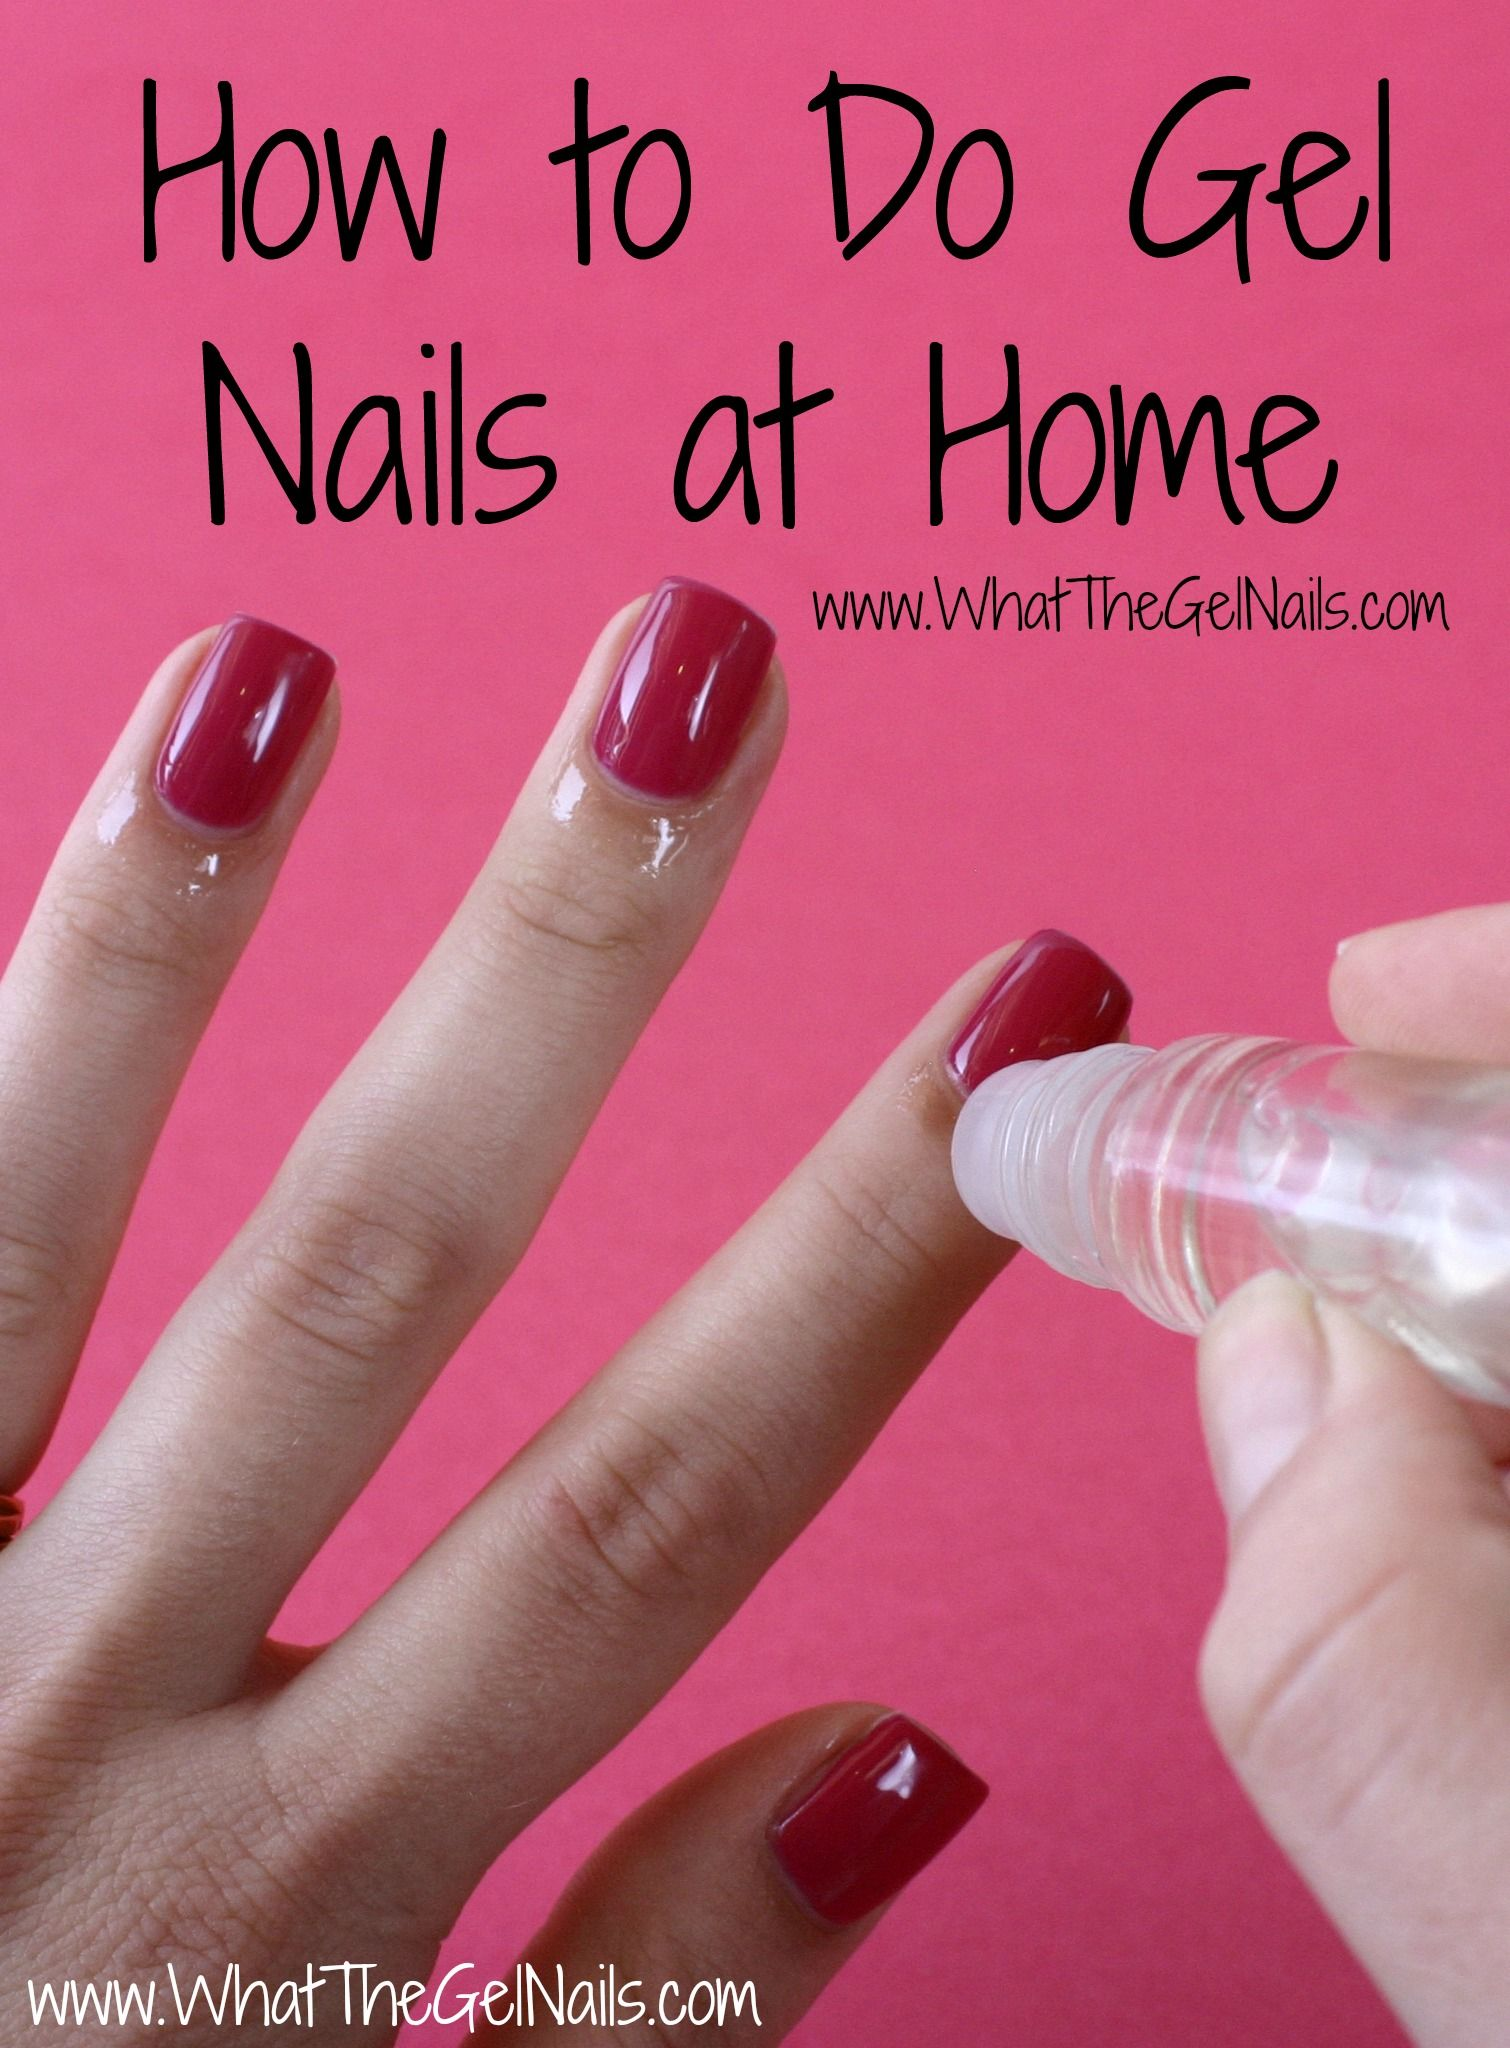 How to do gel nails at home beauty pinterest uas lindas how to do gel nails at home solutioingenieria Gallery